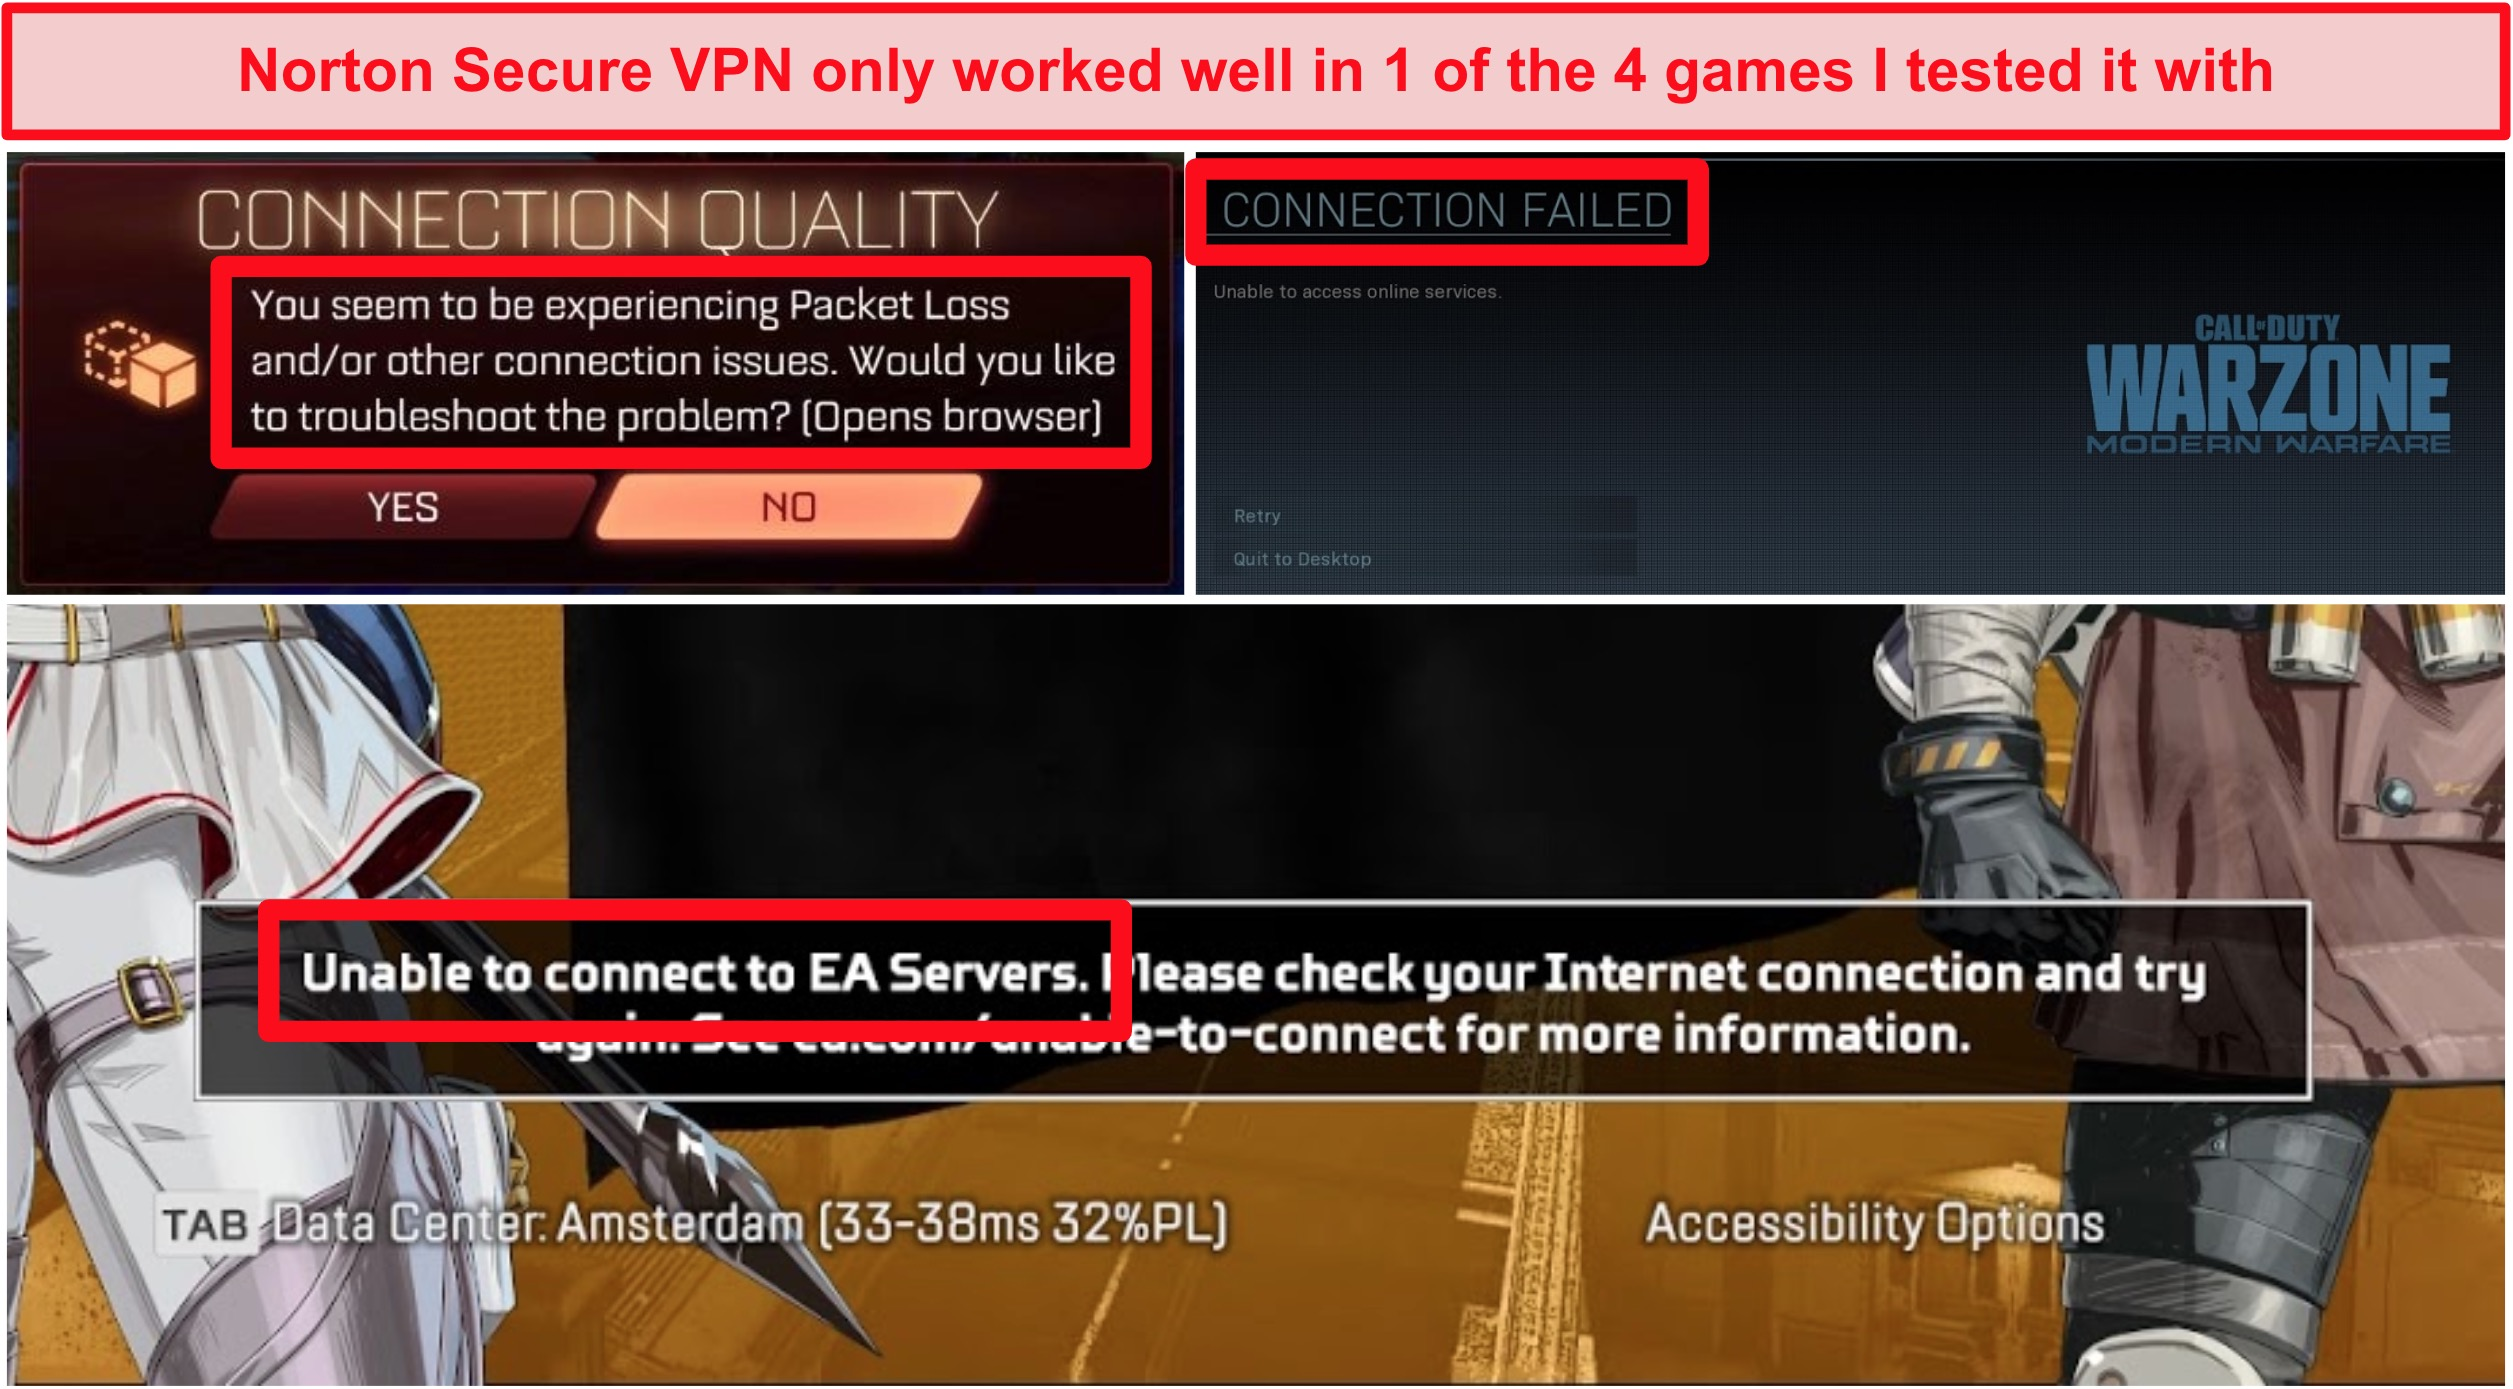 Screenshot of Norton Secure VPN causing connectivity issues in online games.